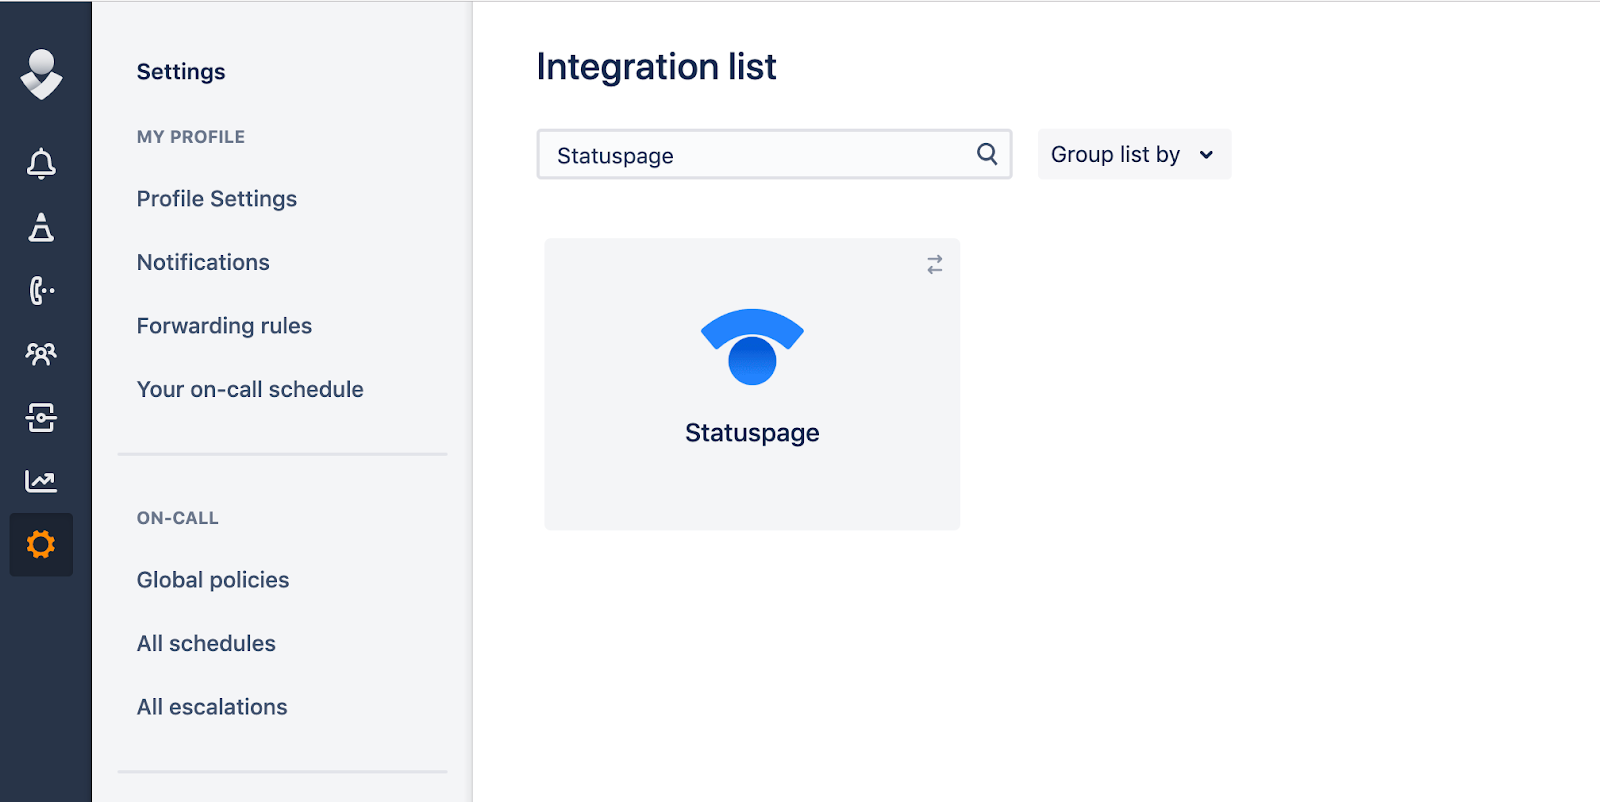 Integration list from opsgenie